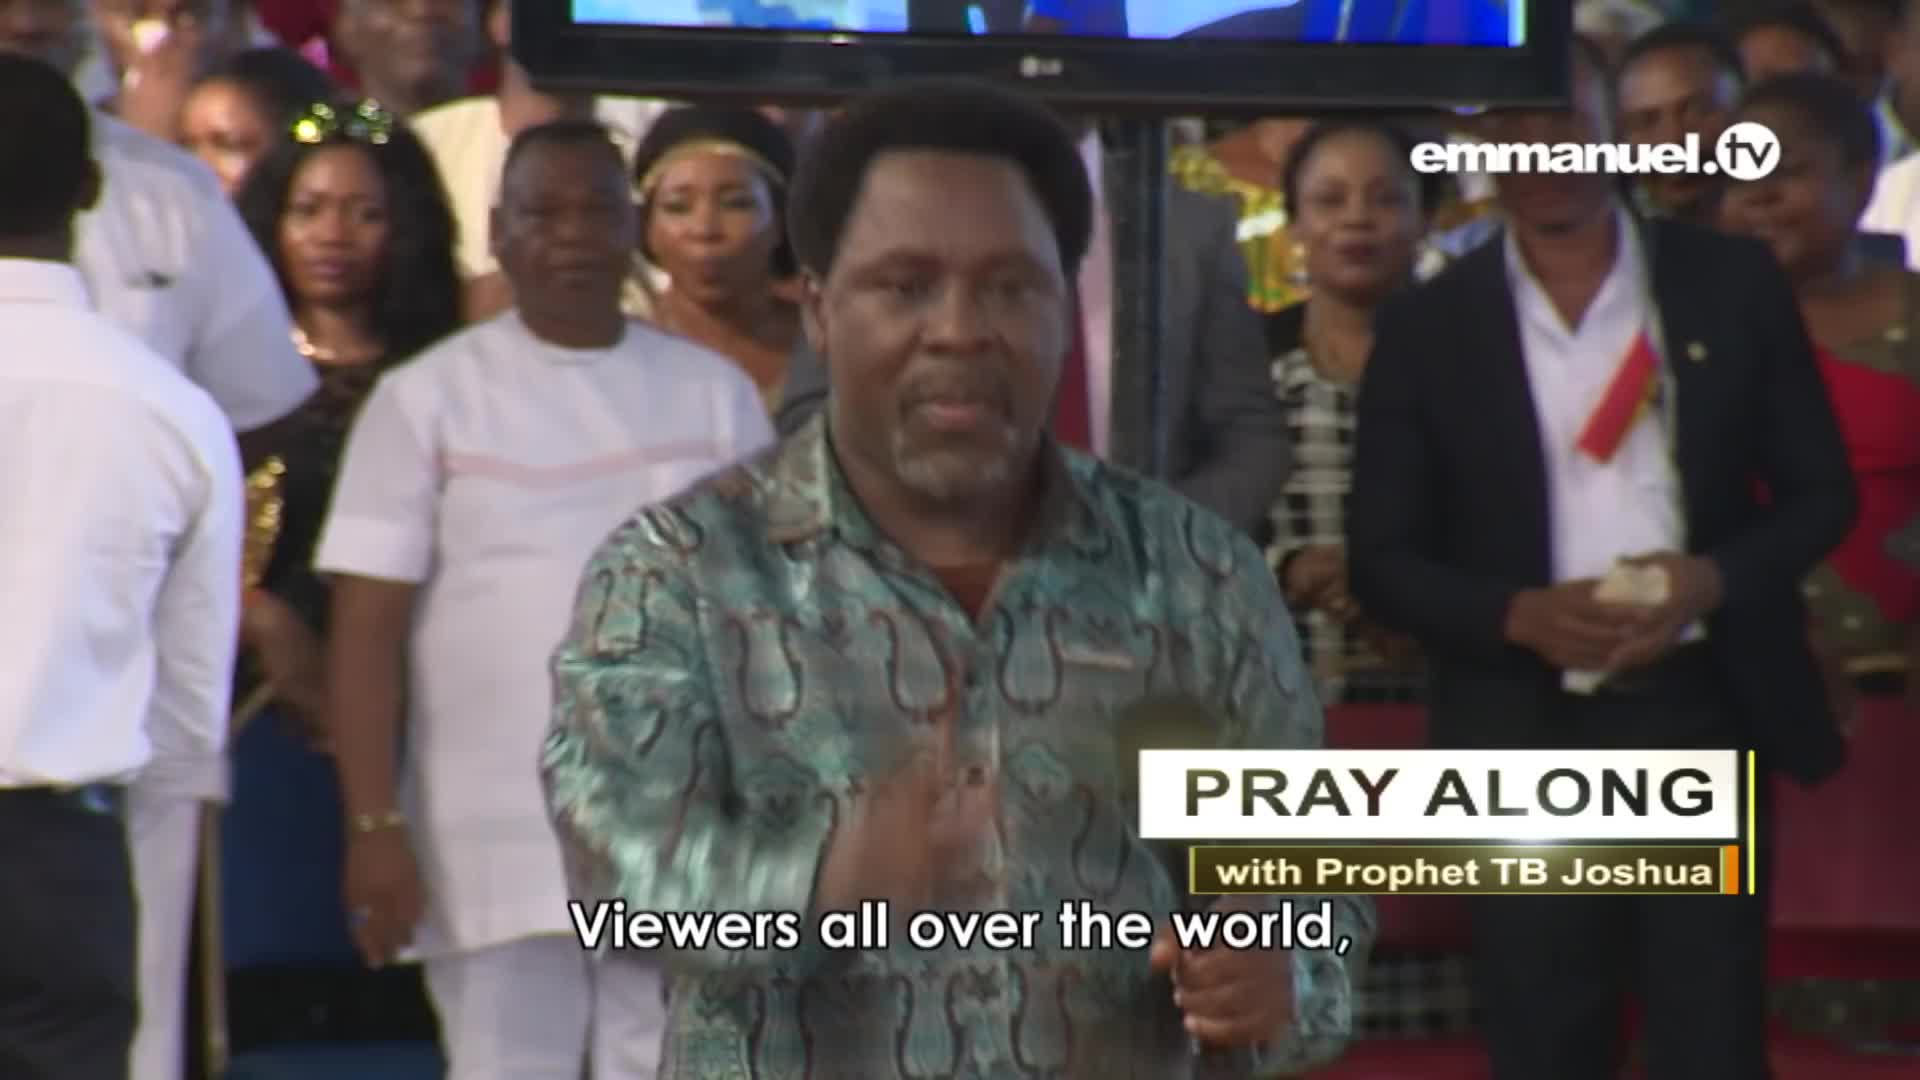 GODS POWER UNLEASHED ON YOUTUBE Pray With Prophet T B Joshua